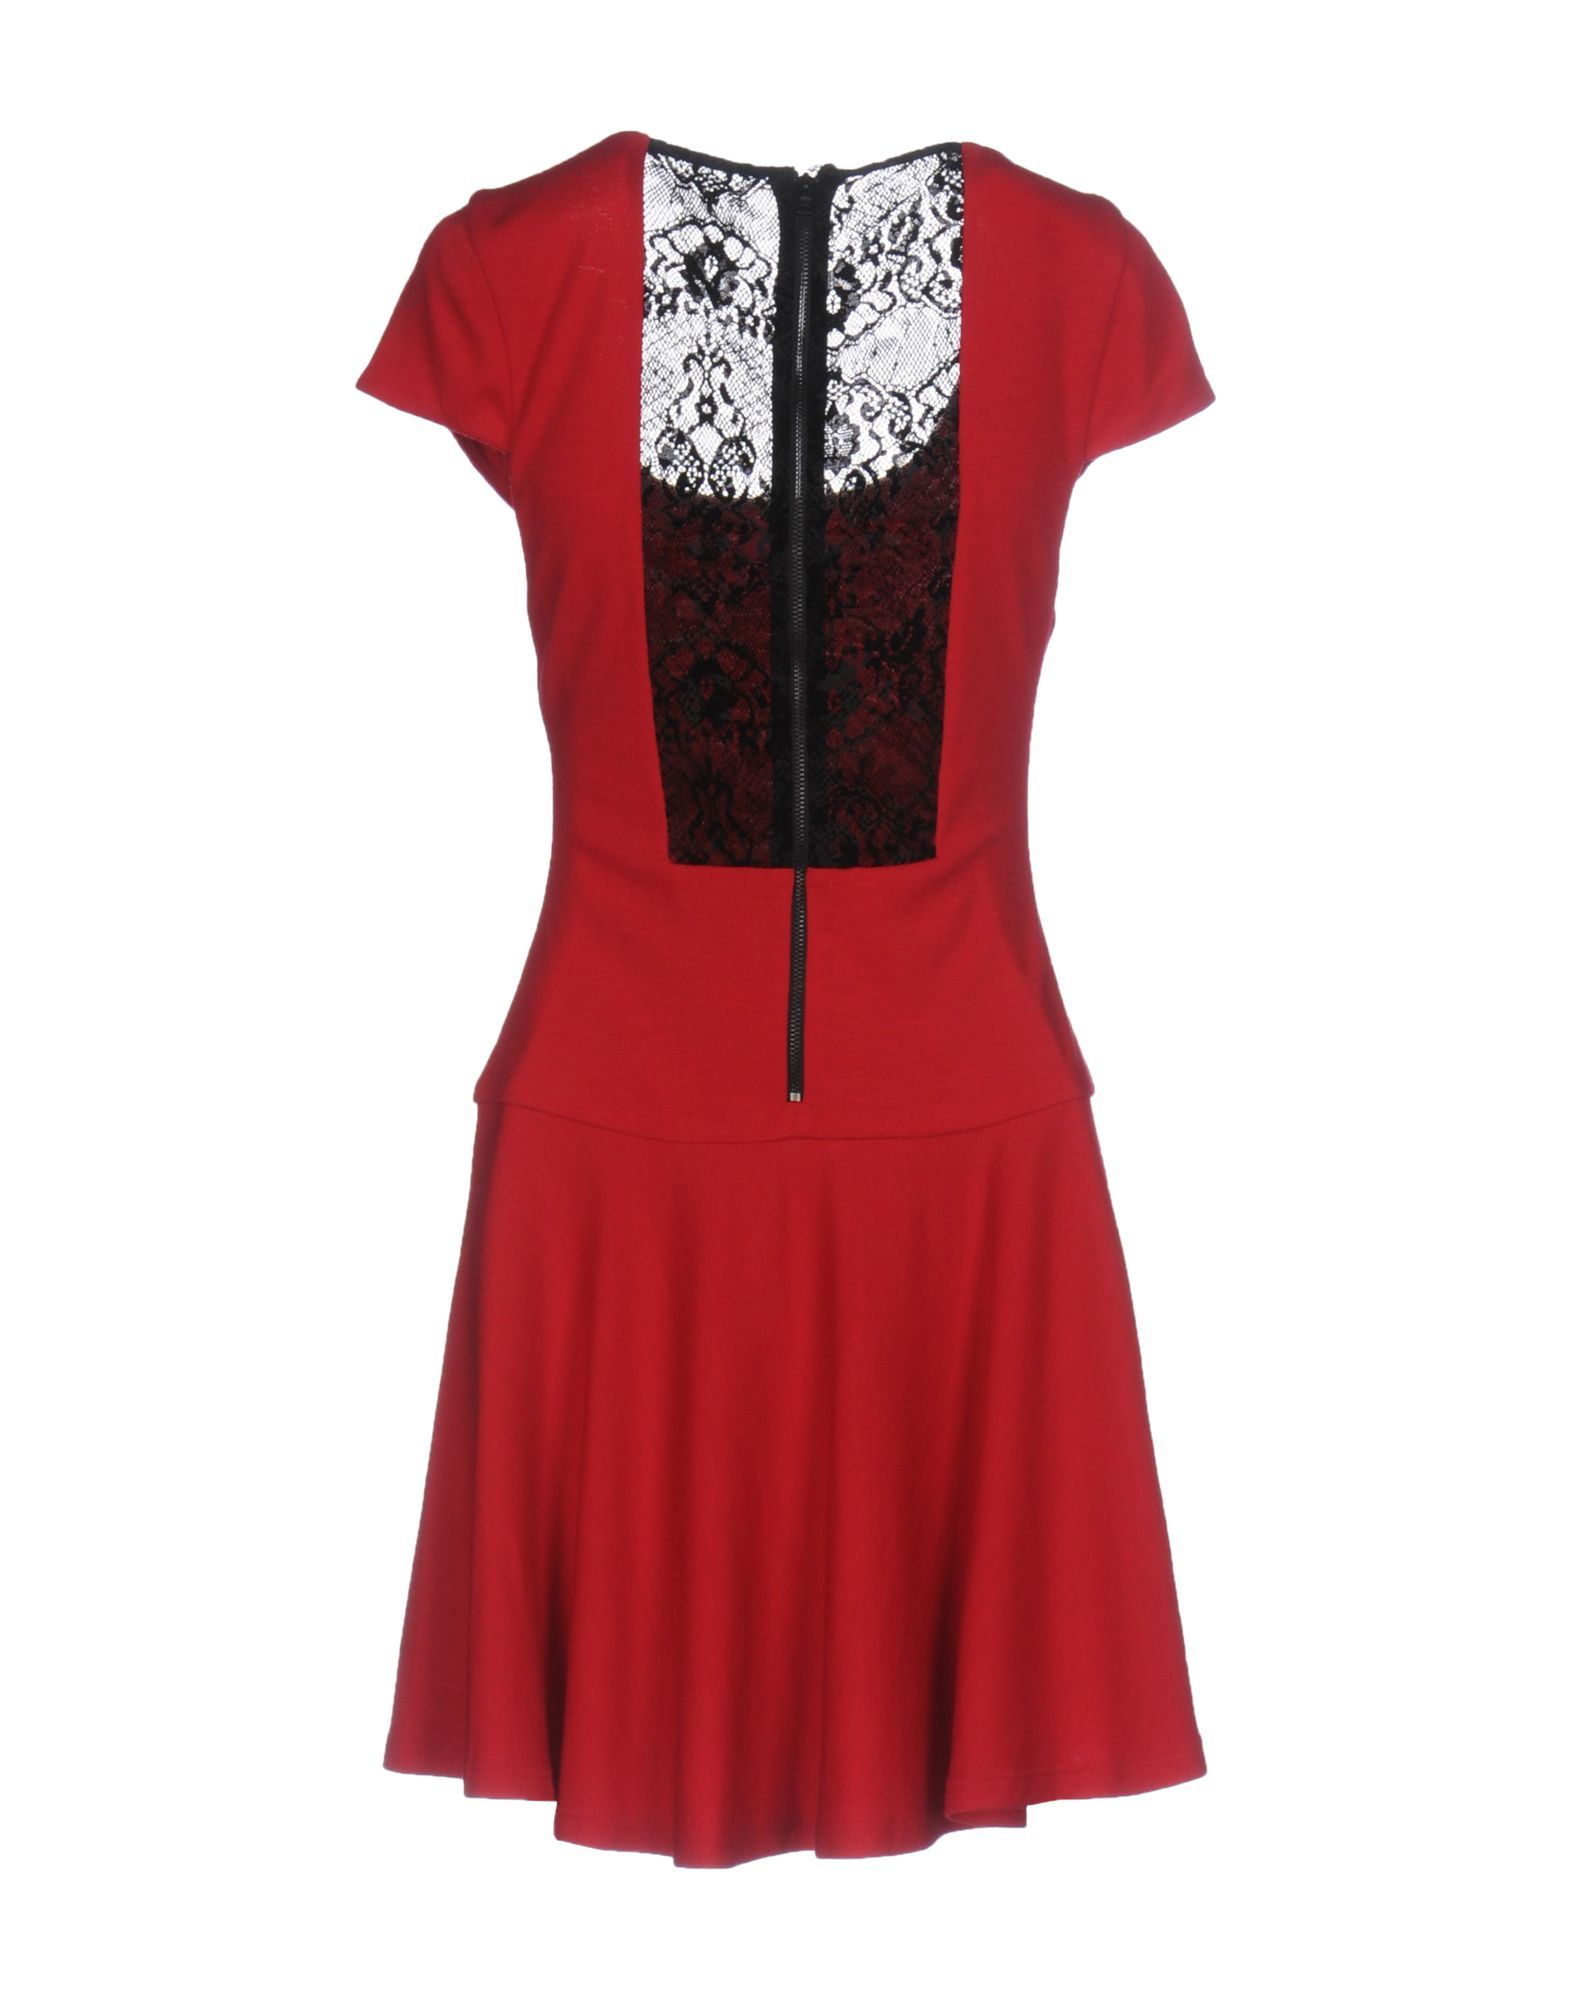 Alice + Olivia Red Wool And Lace Short Sleeve Dress